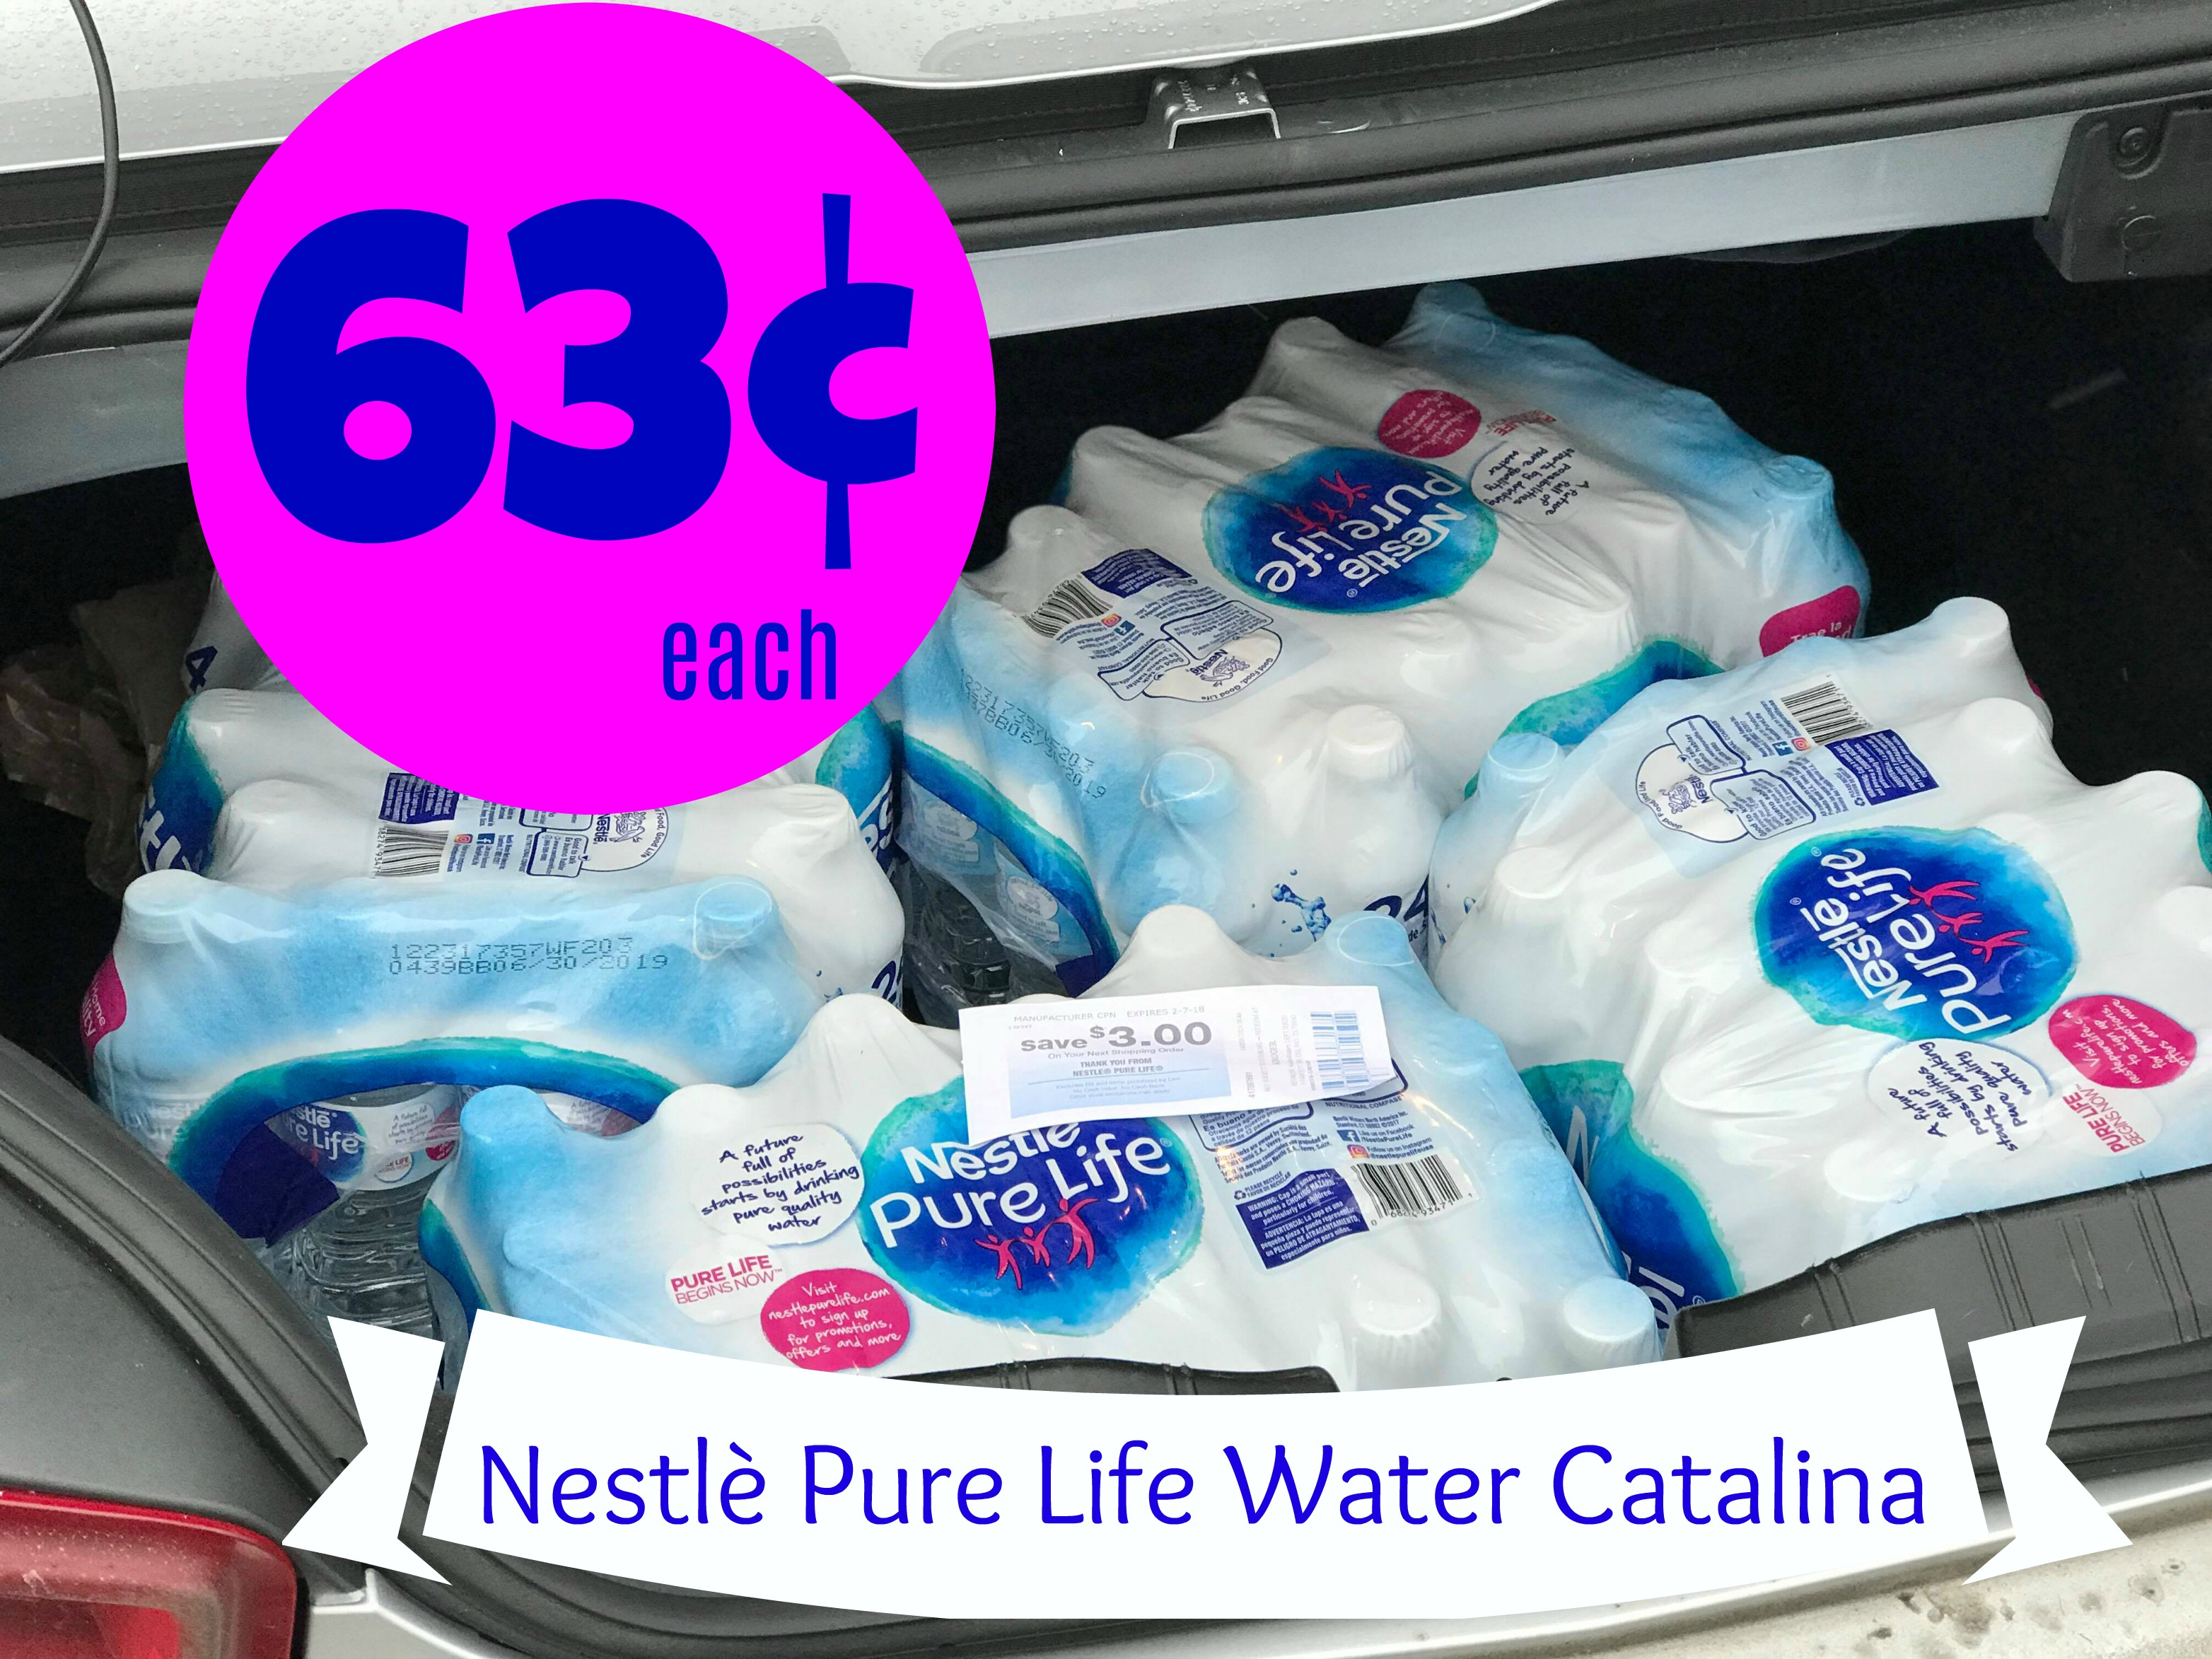 930c01d73b Nestlè Pure Life Water Catalina | Score 24 Packs for ONLY $0.63 each at  Kroger!!